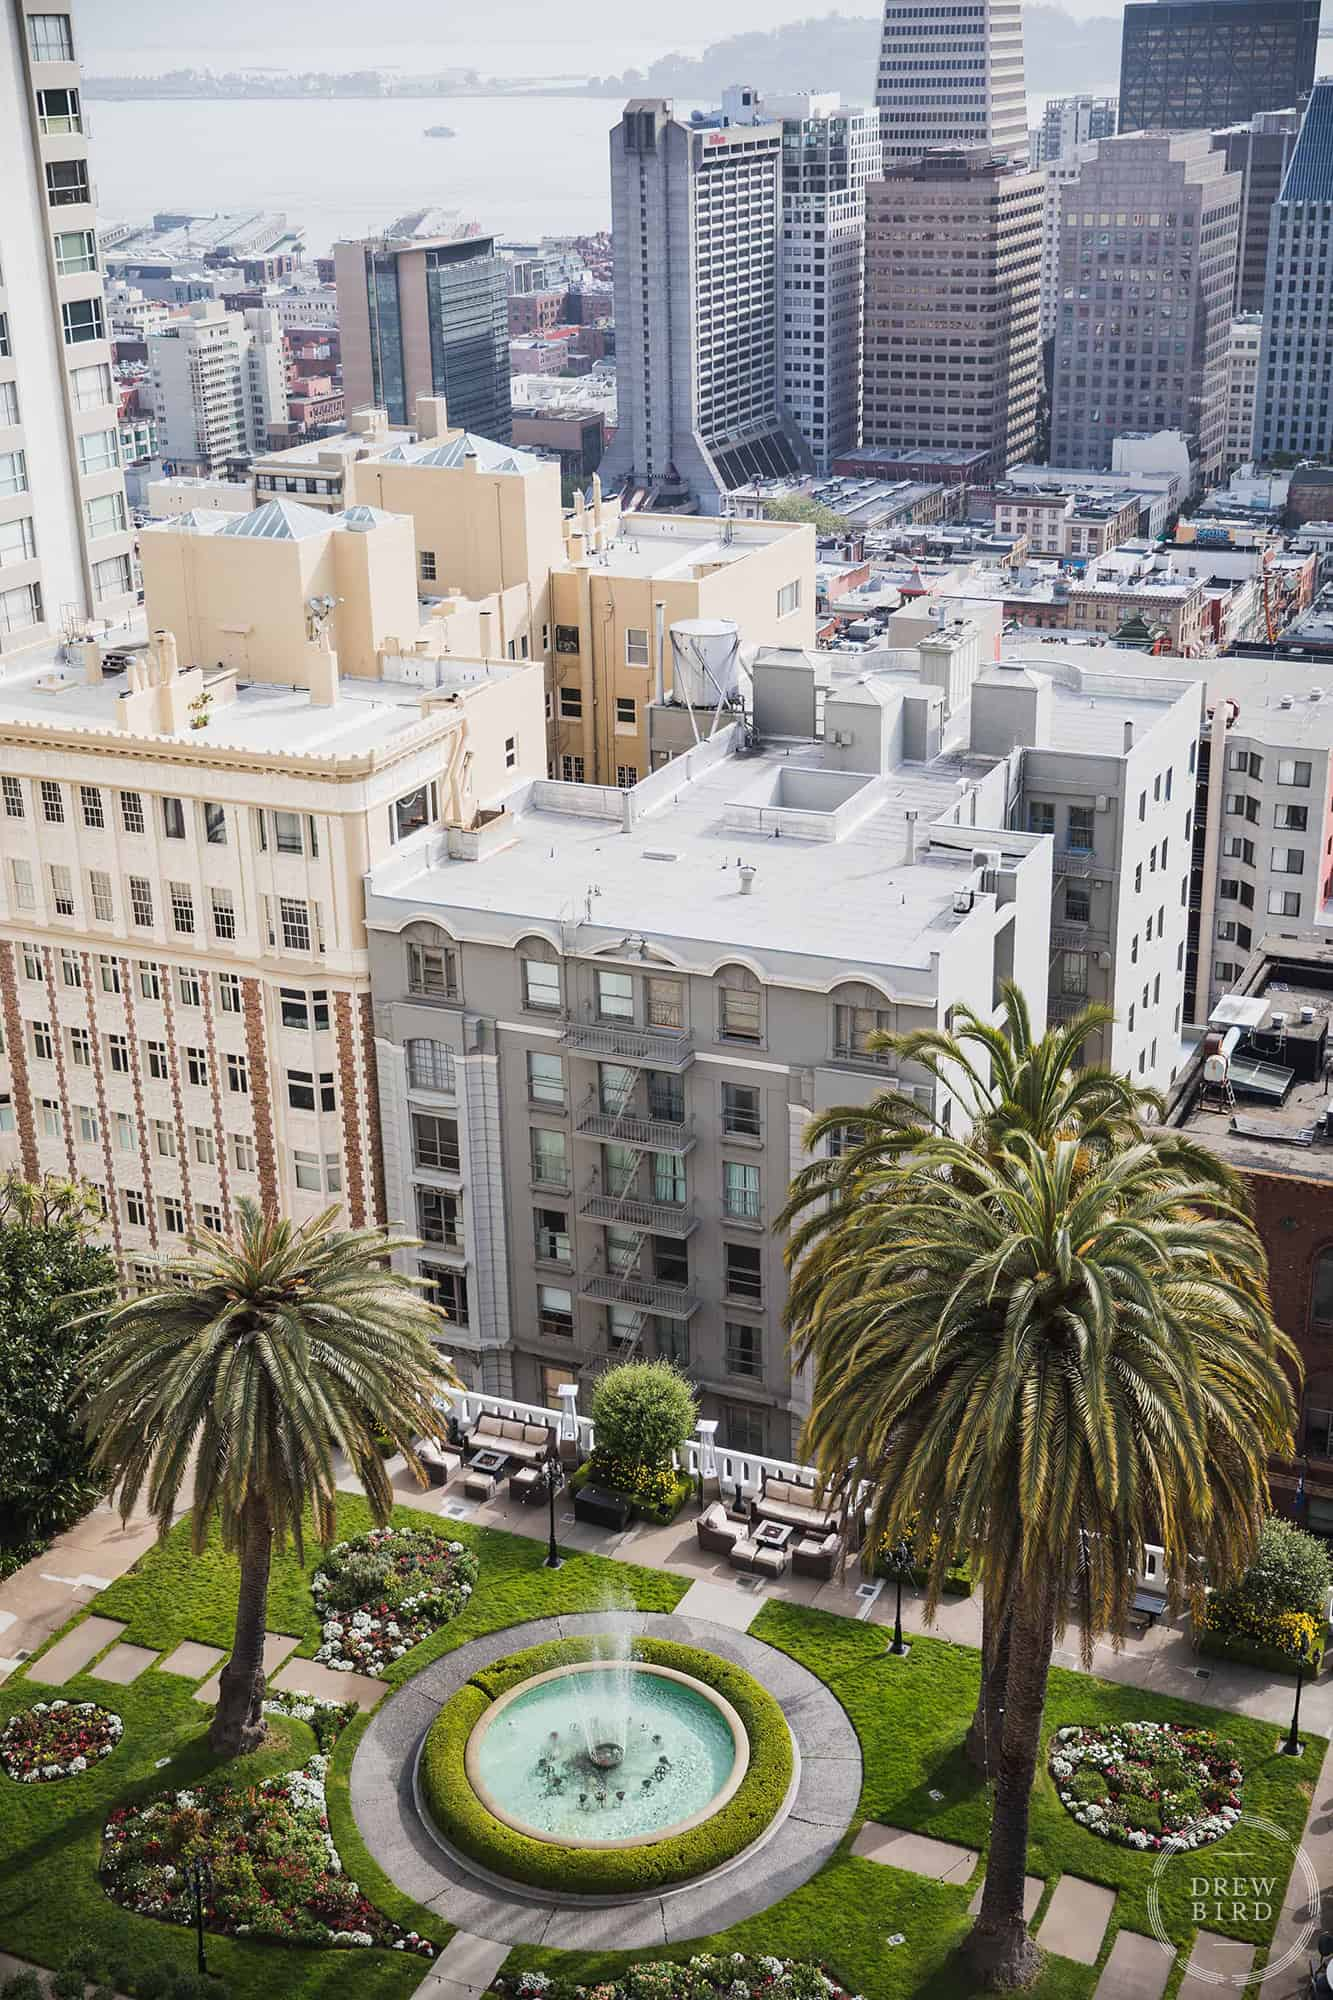 Rooftop garden and San Francisco skyline at the Fairmont Hotel. San Francisco commercial photographer and corporate photographer Drew Bird.